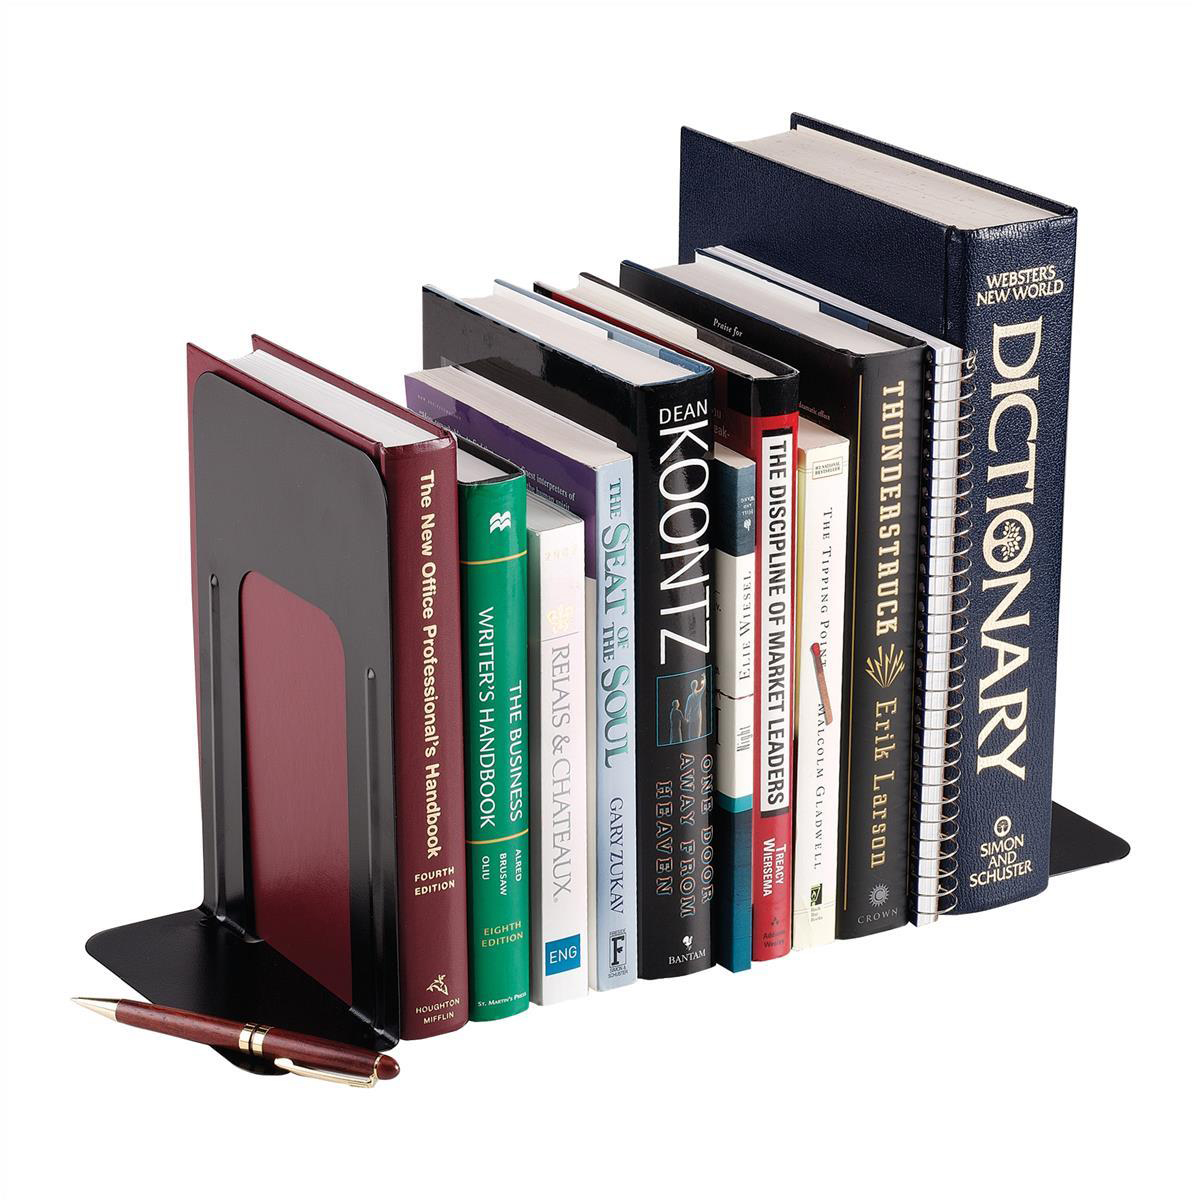 Image for 5 Star Office Bookends Large Metal Black [Pack 2]